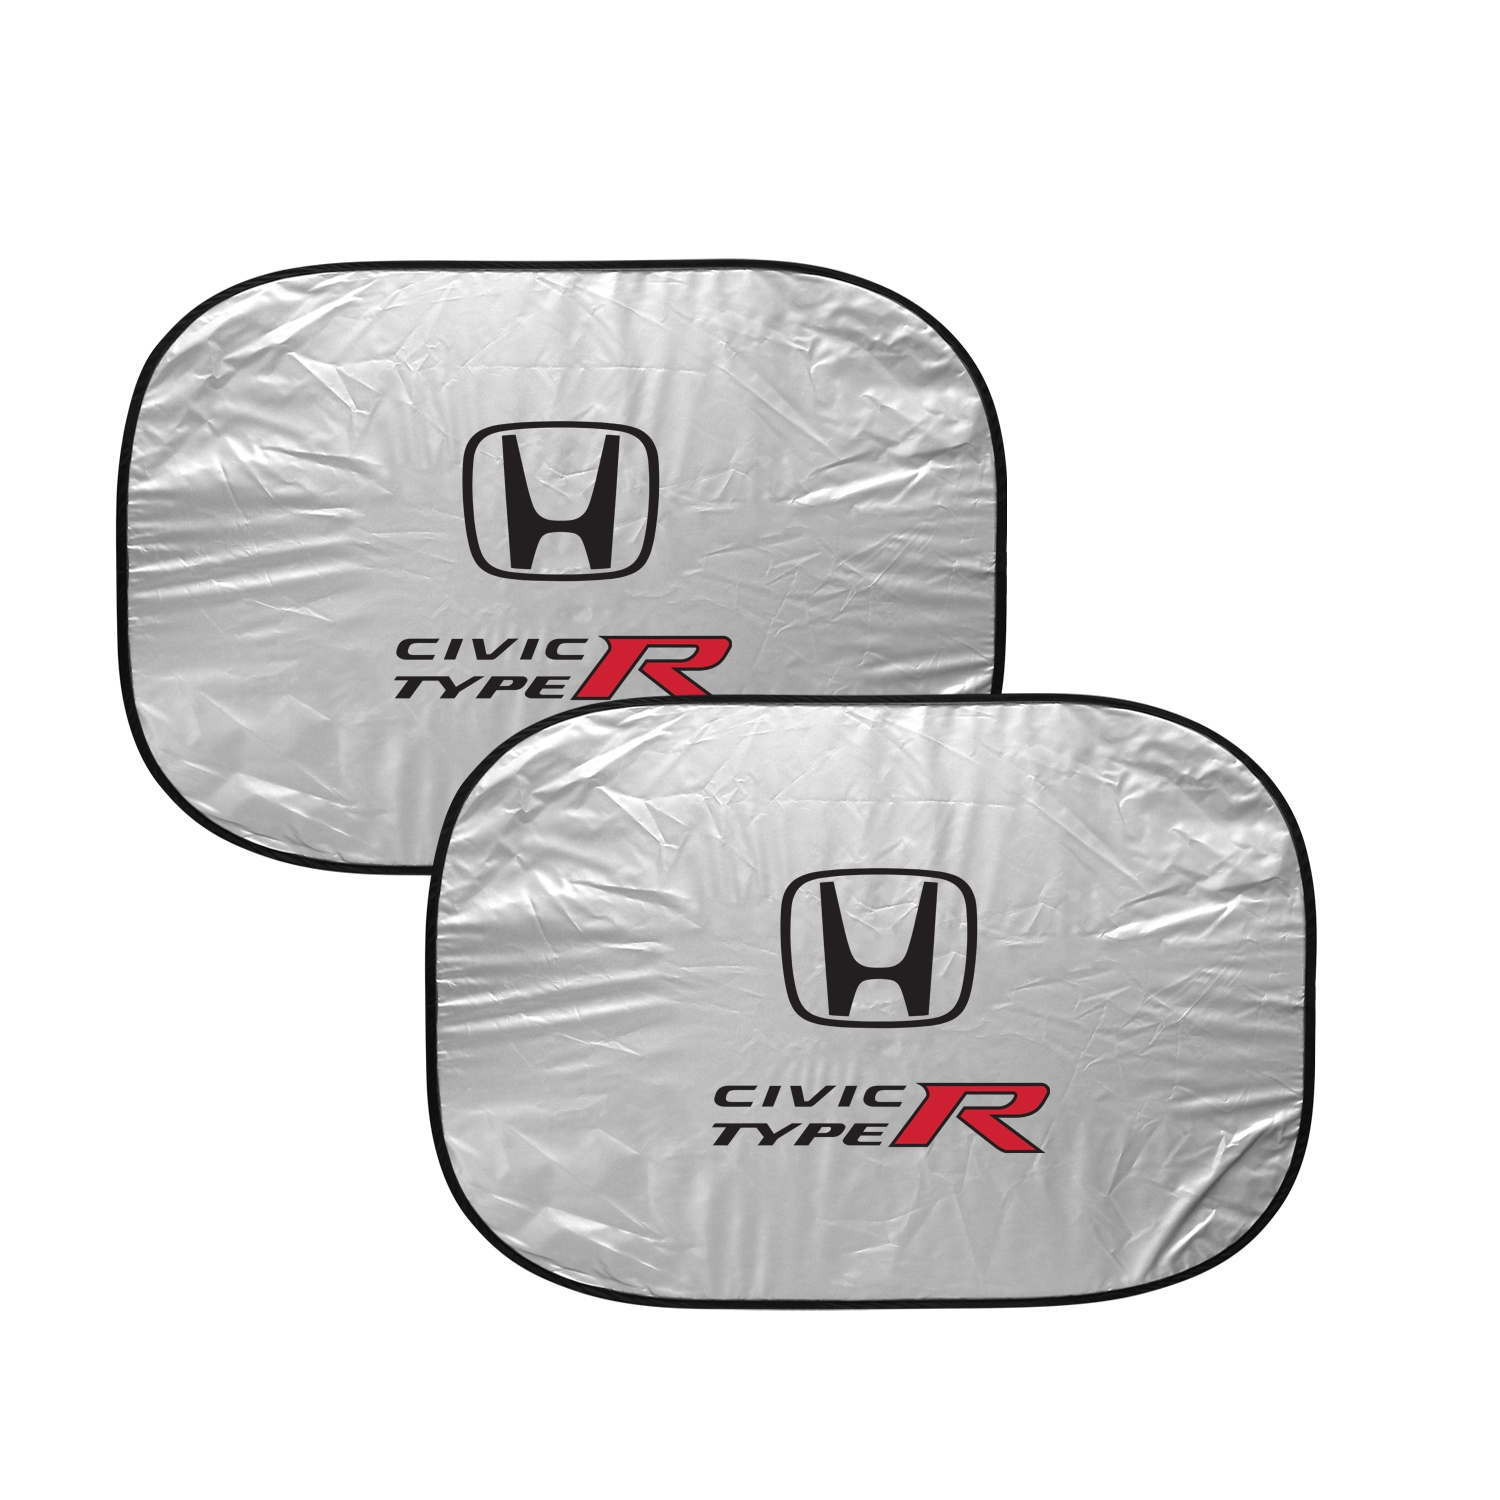 Honda Civic Type-R Dual Panels Easy Folding Windshield Sun Shade for Cars and Small SUVs